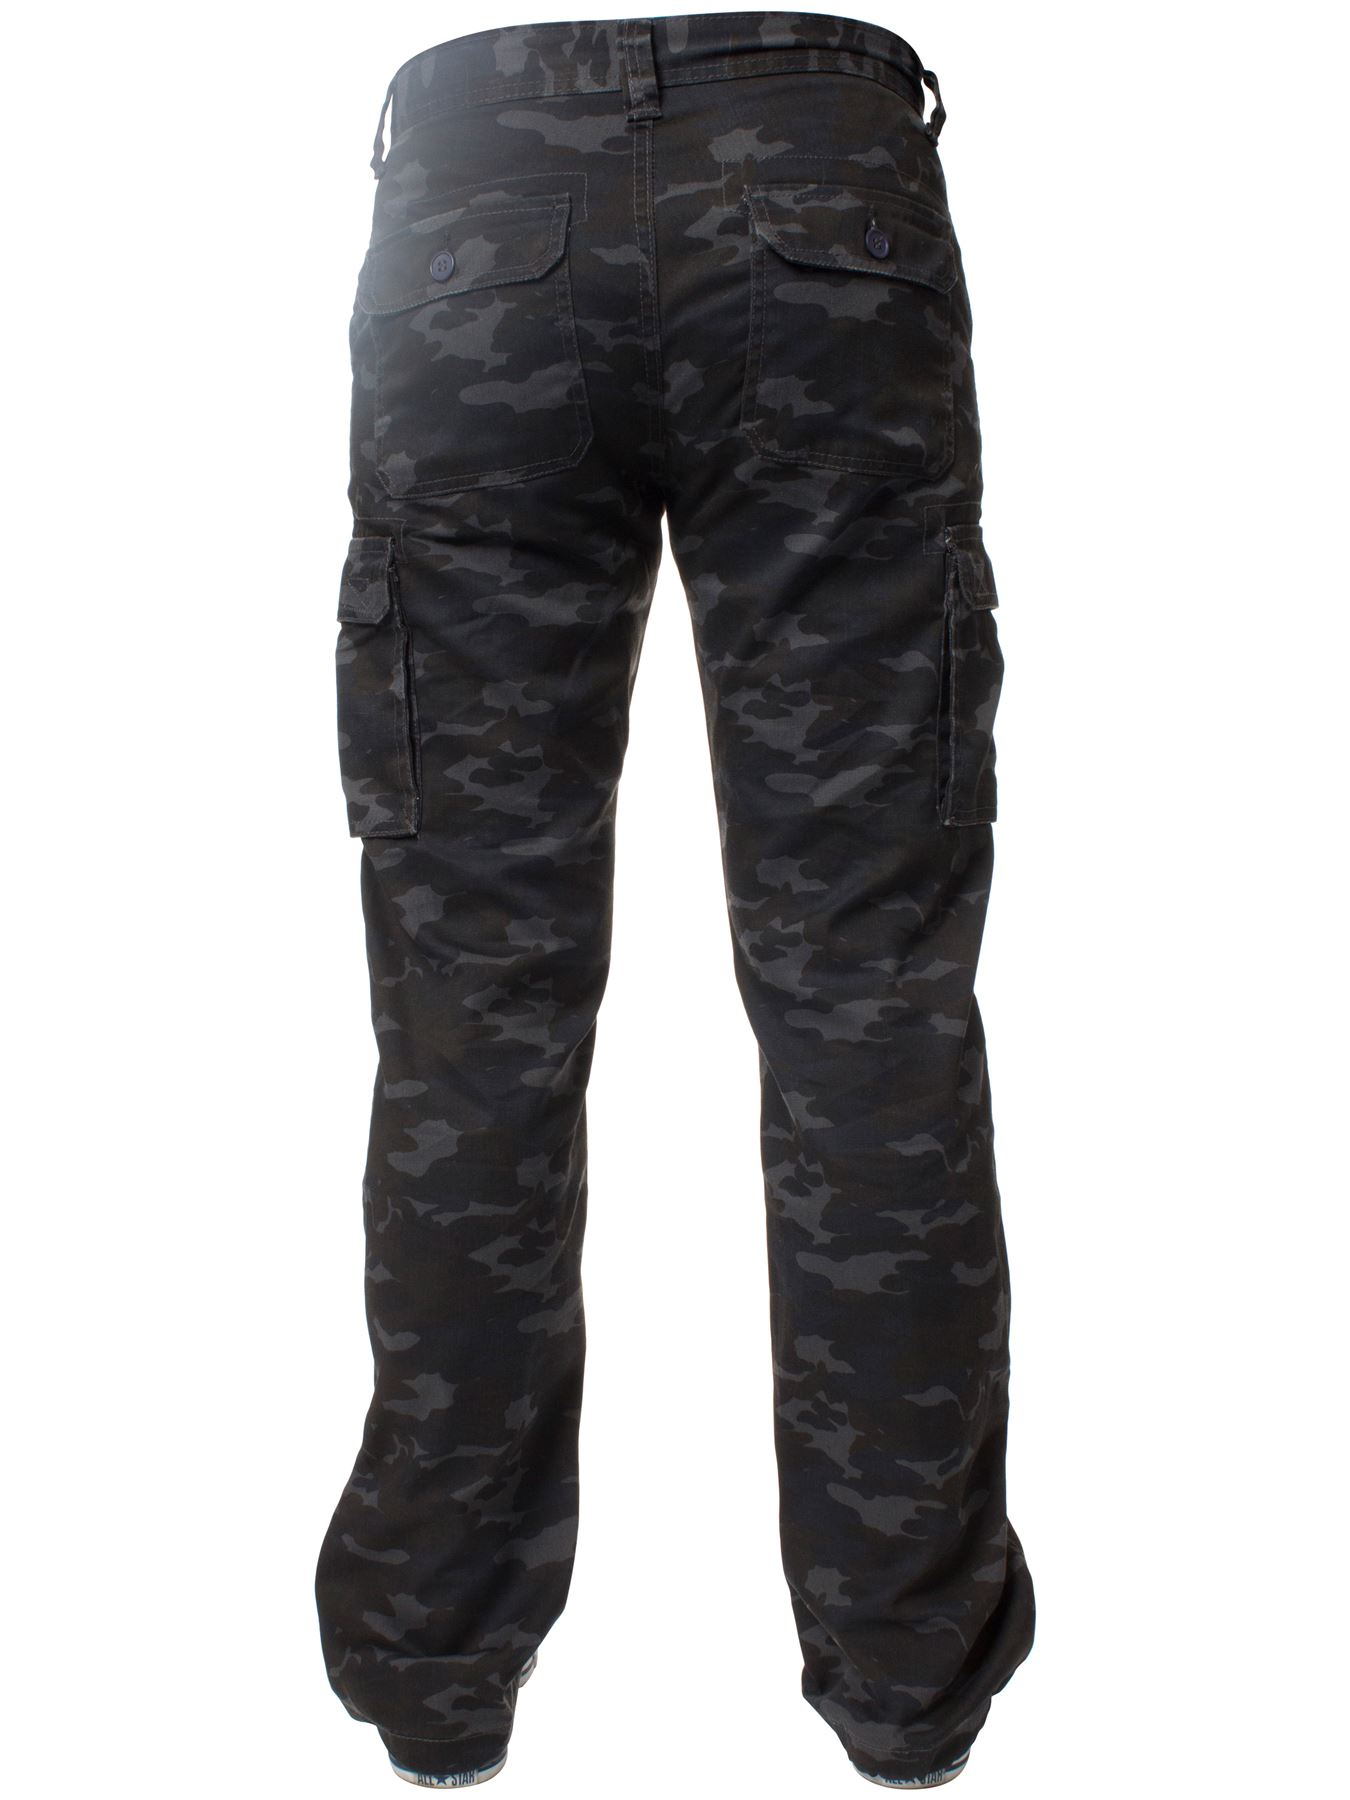 Kruze-Mens-Military-Combat-Trousers-Camouflage-Cargo-Camo-Army-Casual-Work-Pants thumbnail 35